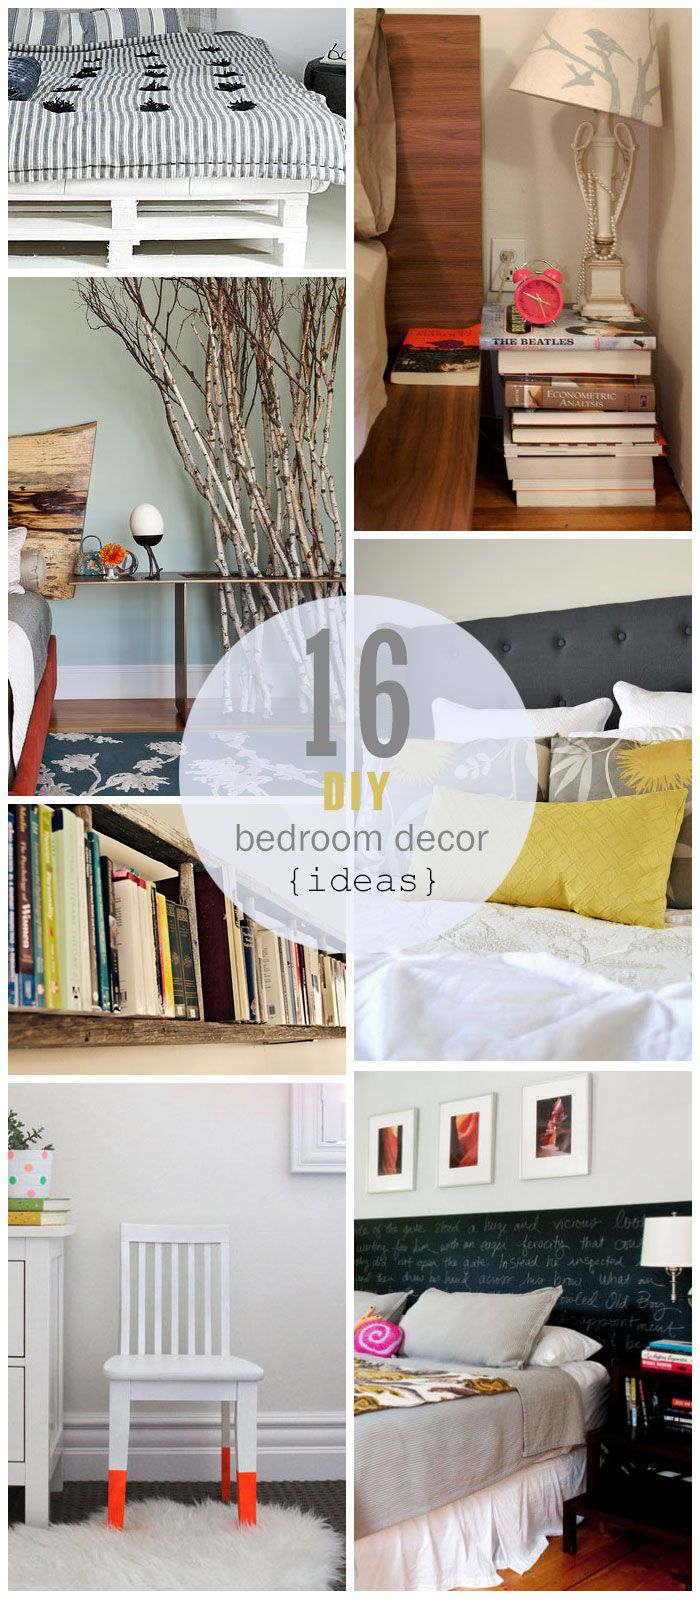 Bedroom decor ideas on a budget - 17 Best Ideas About Budget Bedroom On Pinterest Apartment Bedroom Decor Bedroom Themes And Cozy Apartment Decor